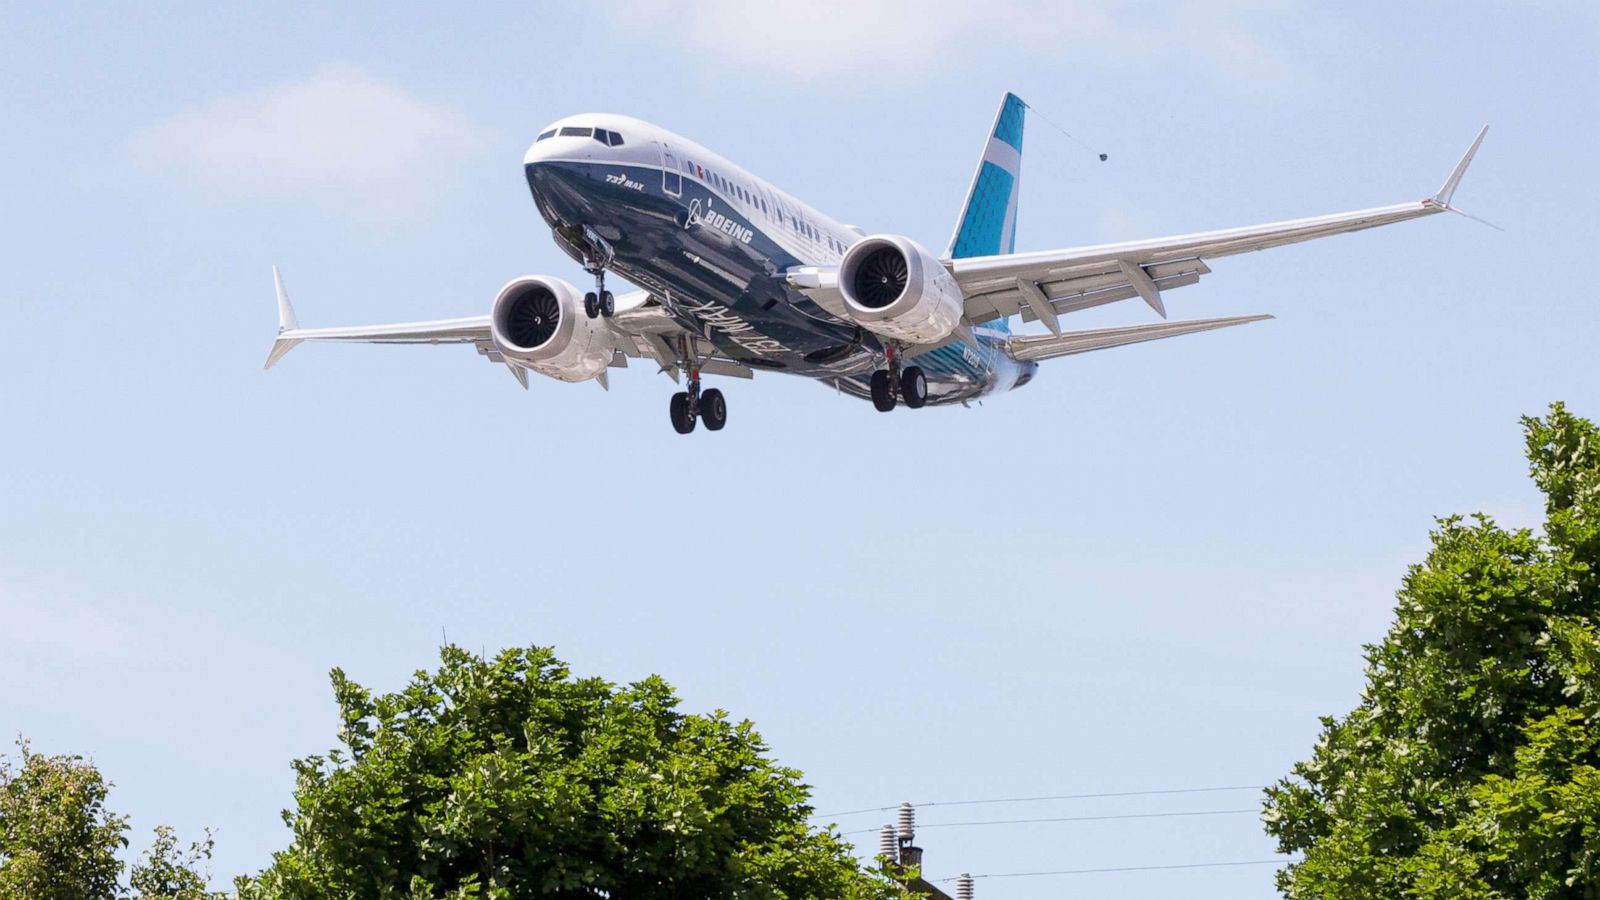 House Committee Final Report Says Boeing Faa Failures To Blame For Deadly 737 Max Crashes Abc News